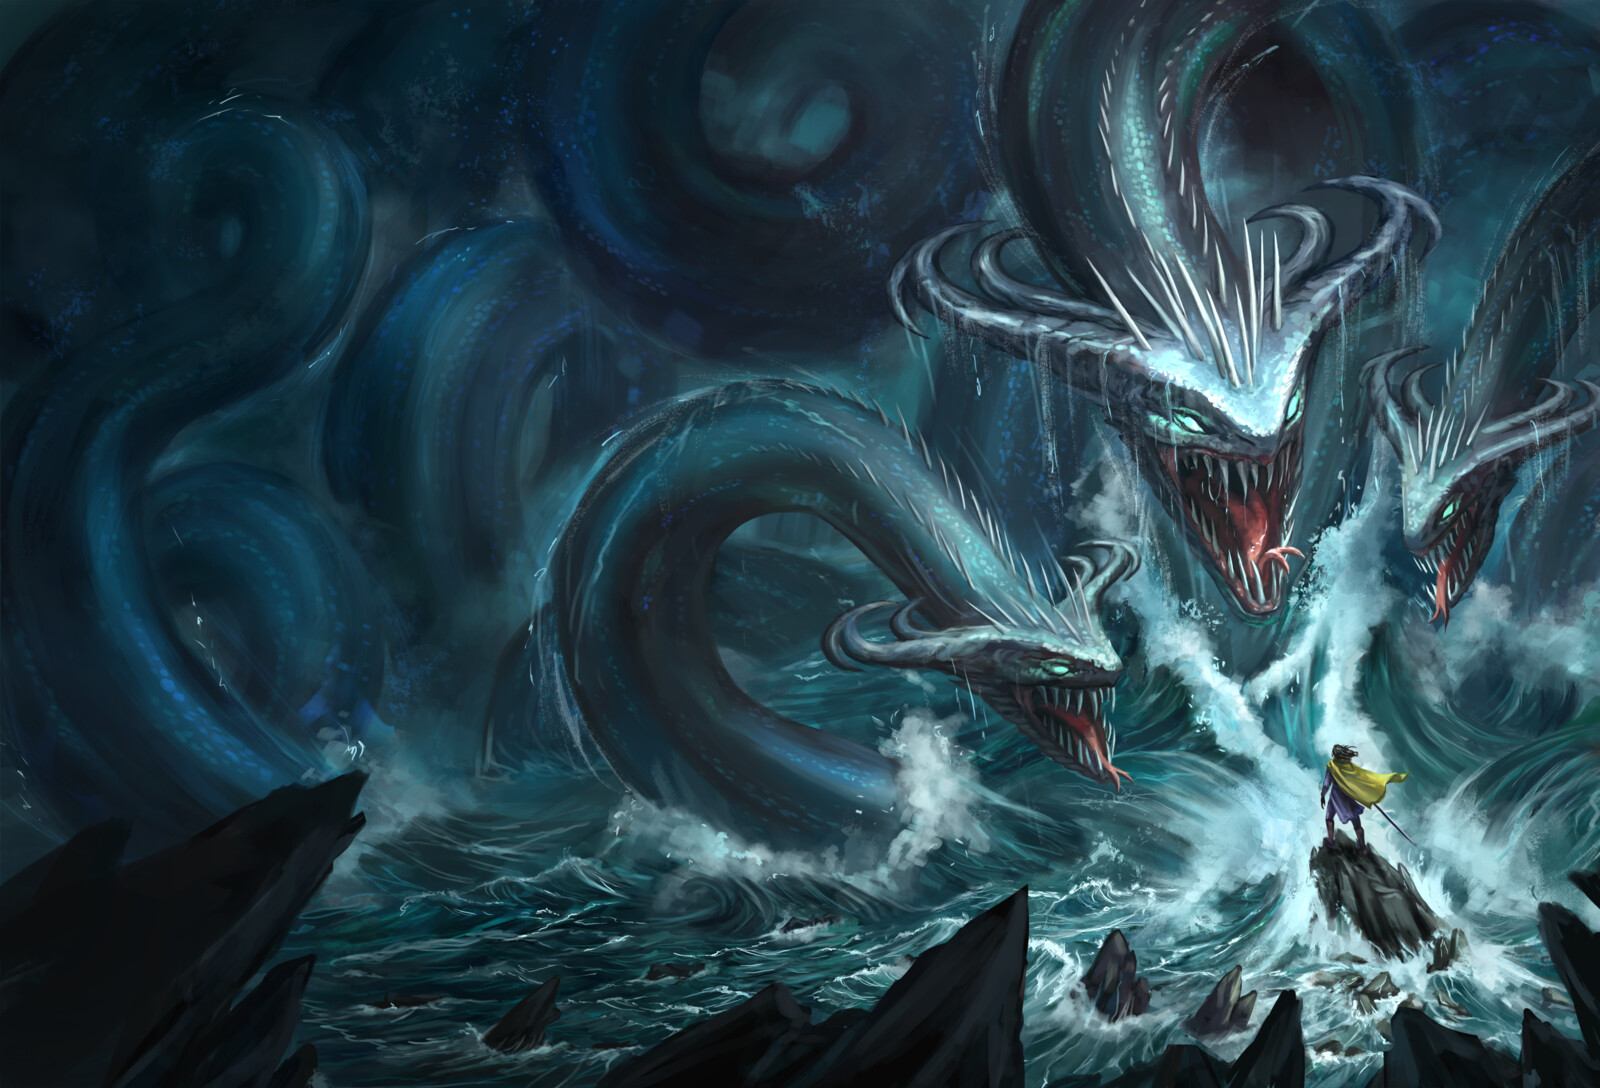 Serpent of the Sea